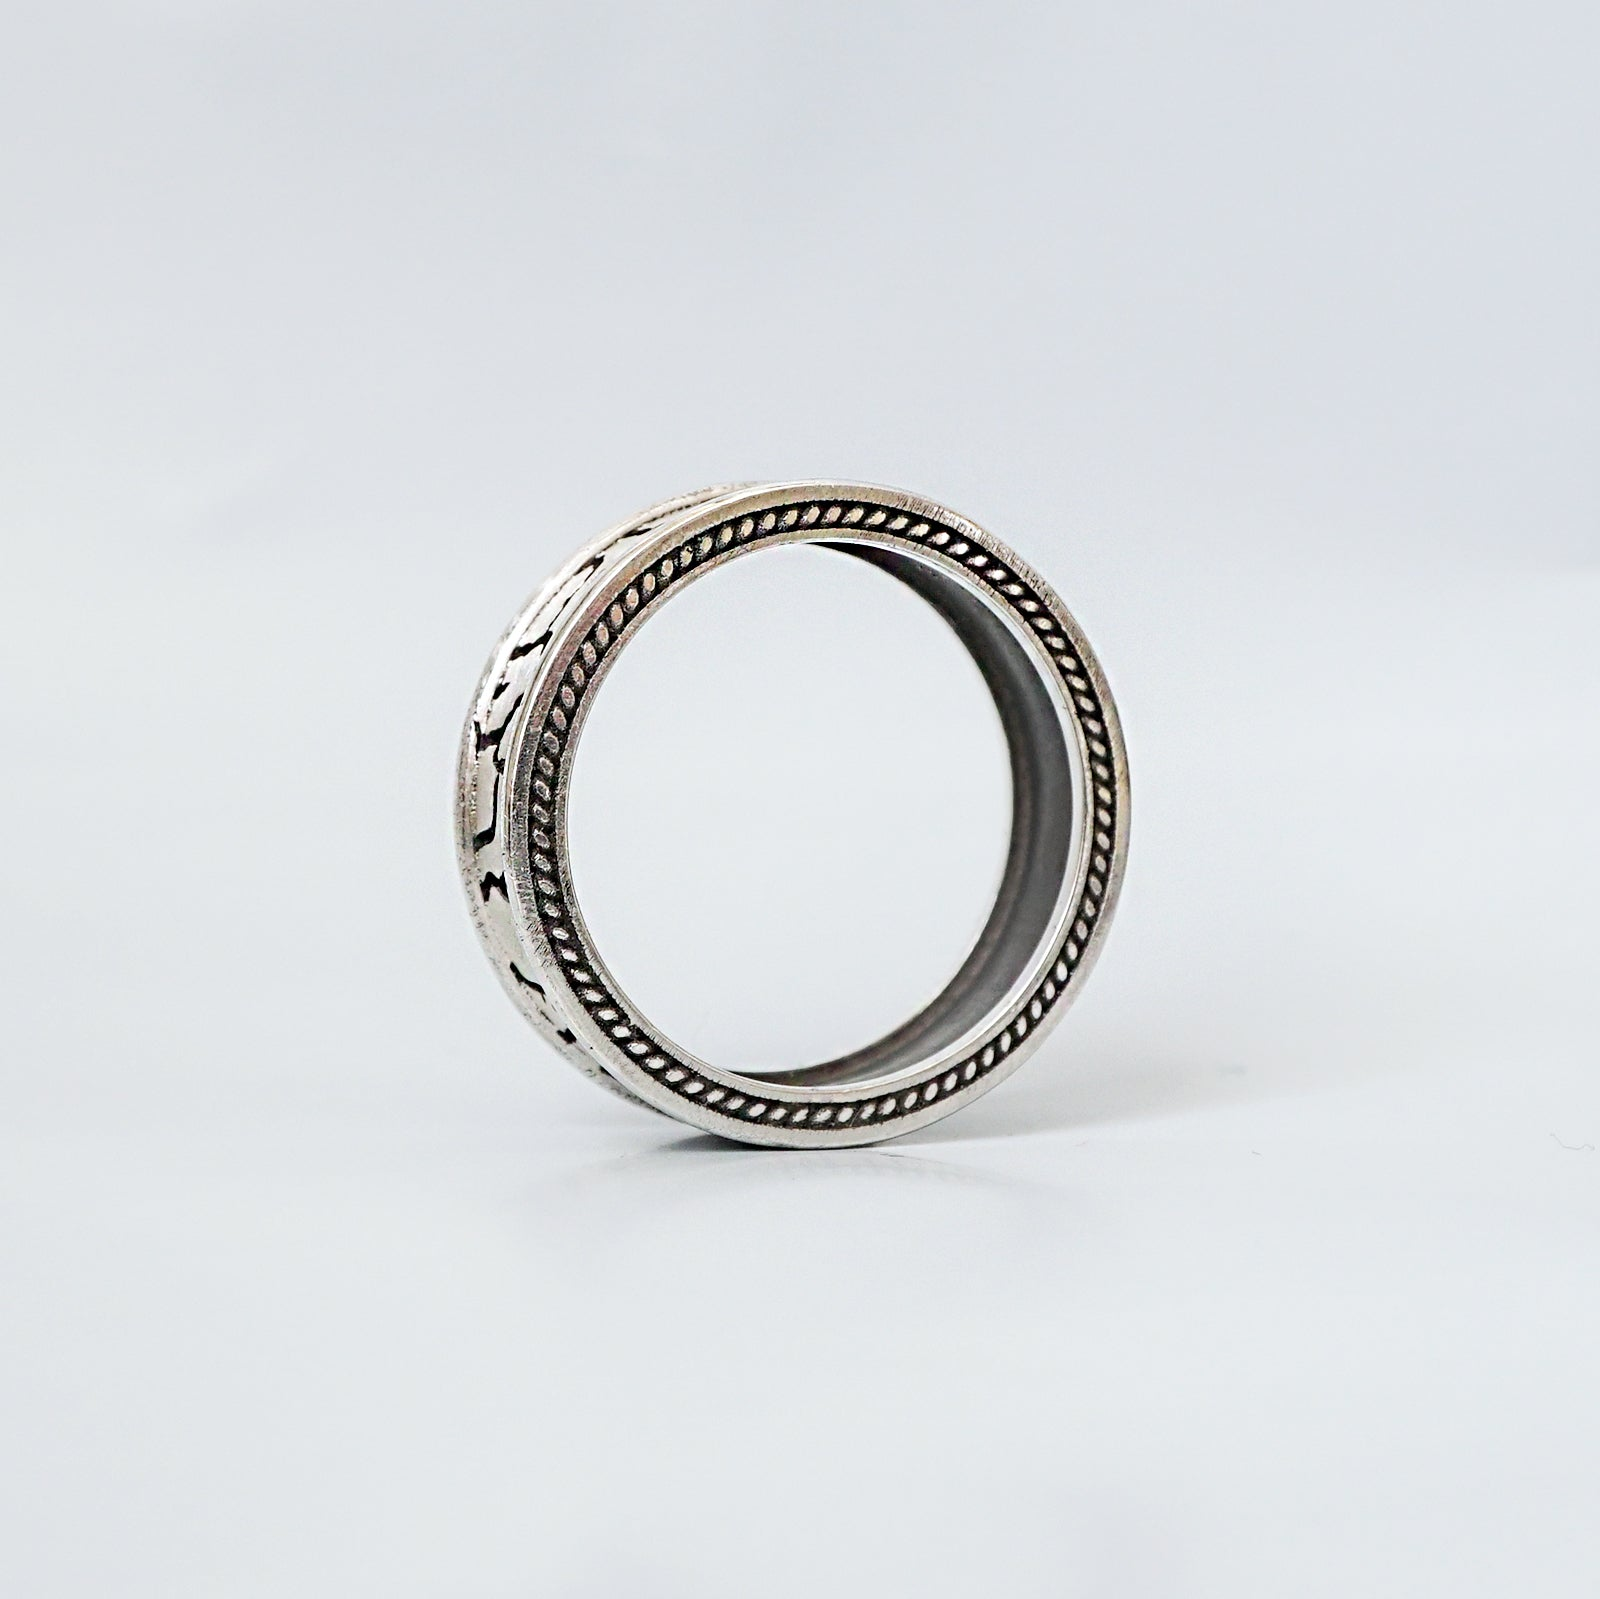 Stone Age Silver Ring